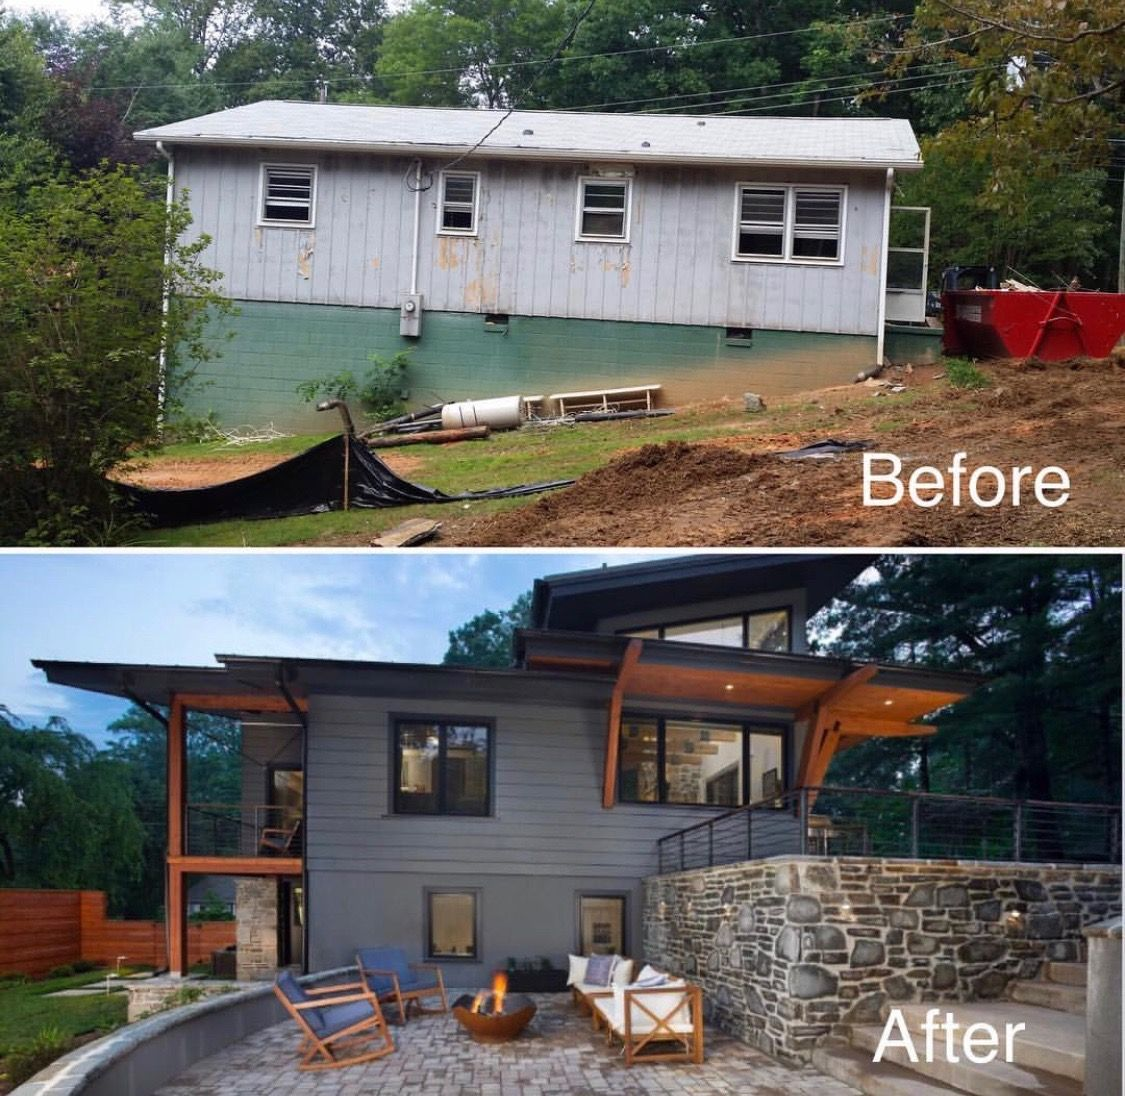 Pin By Kate Dart On Miscellaneous Things House Makeovers Home Exterior Makeover Home Renovation